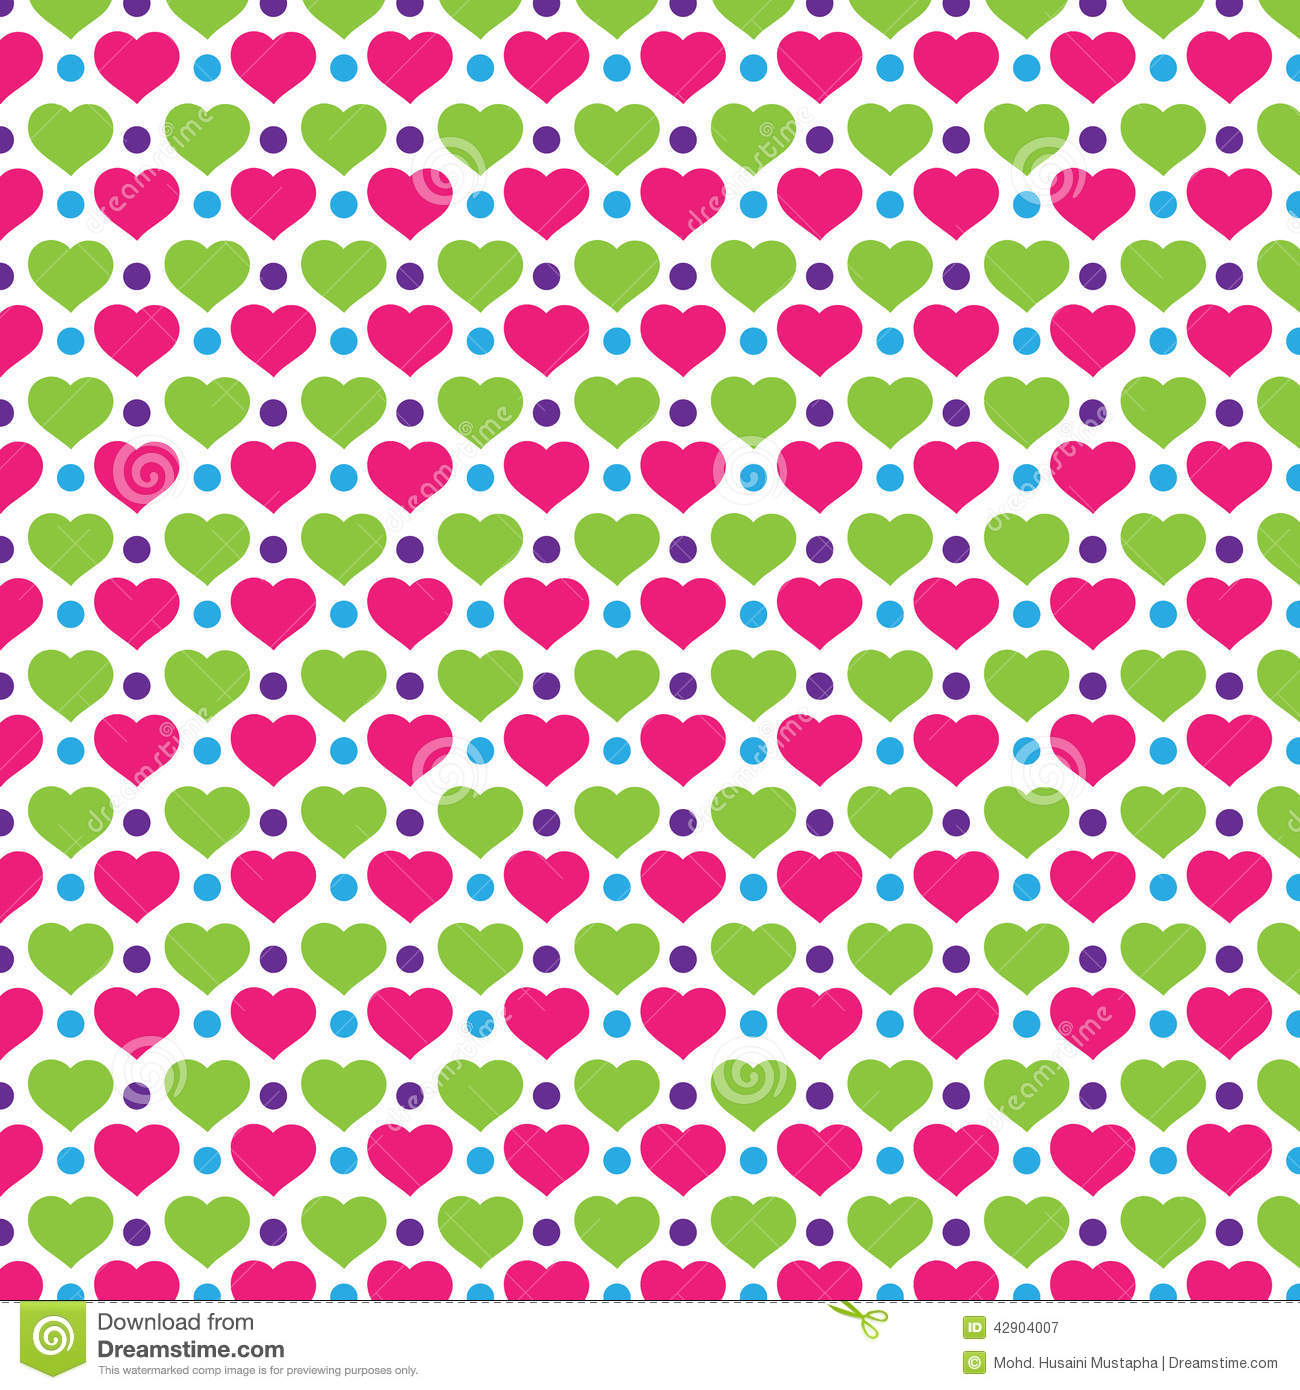 love polkadot background pattern stock vector illustration of batik textile 42904007 dreamstime com